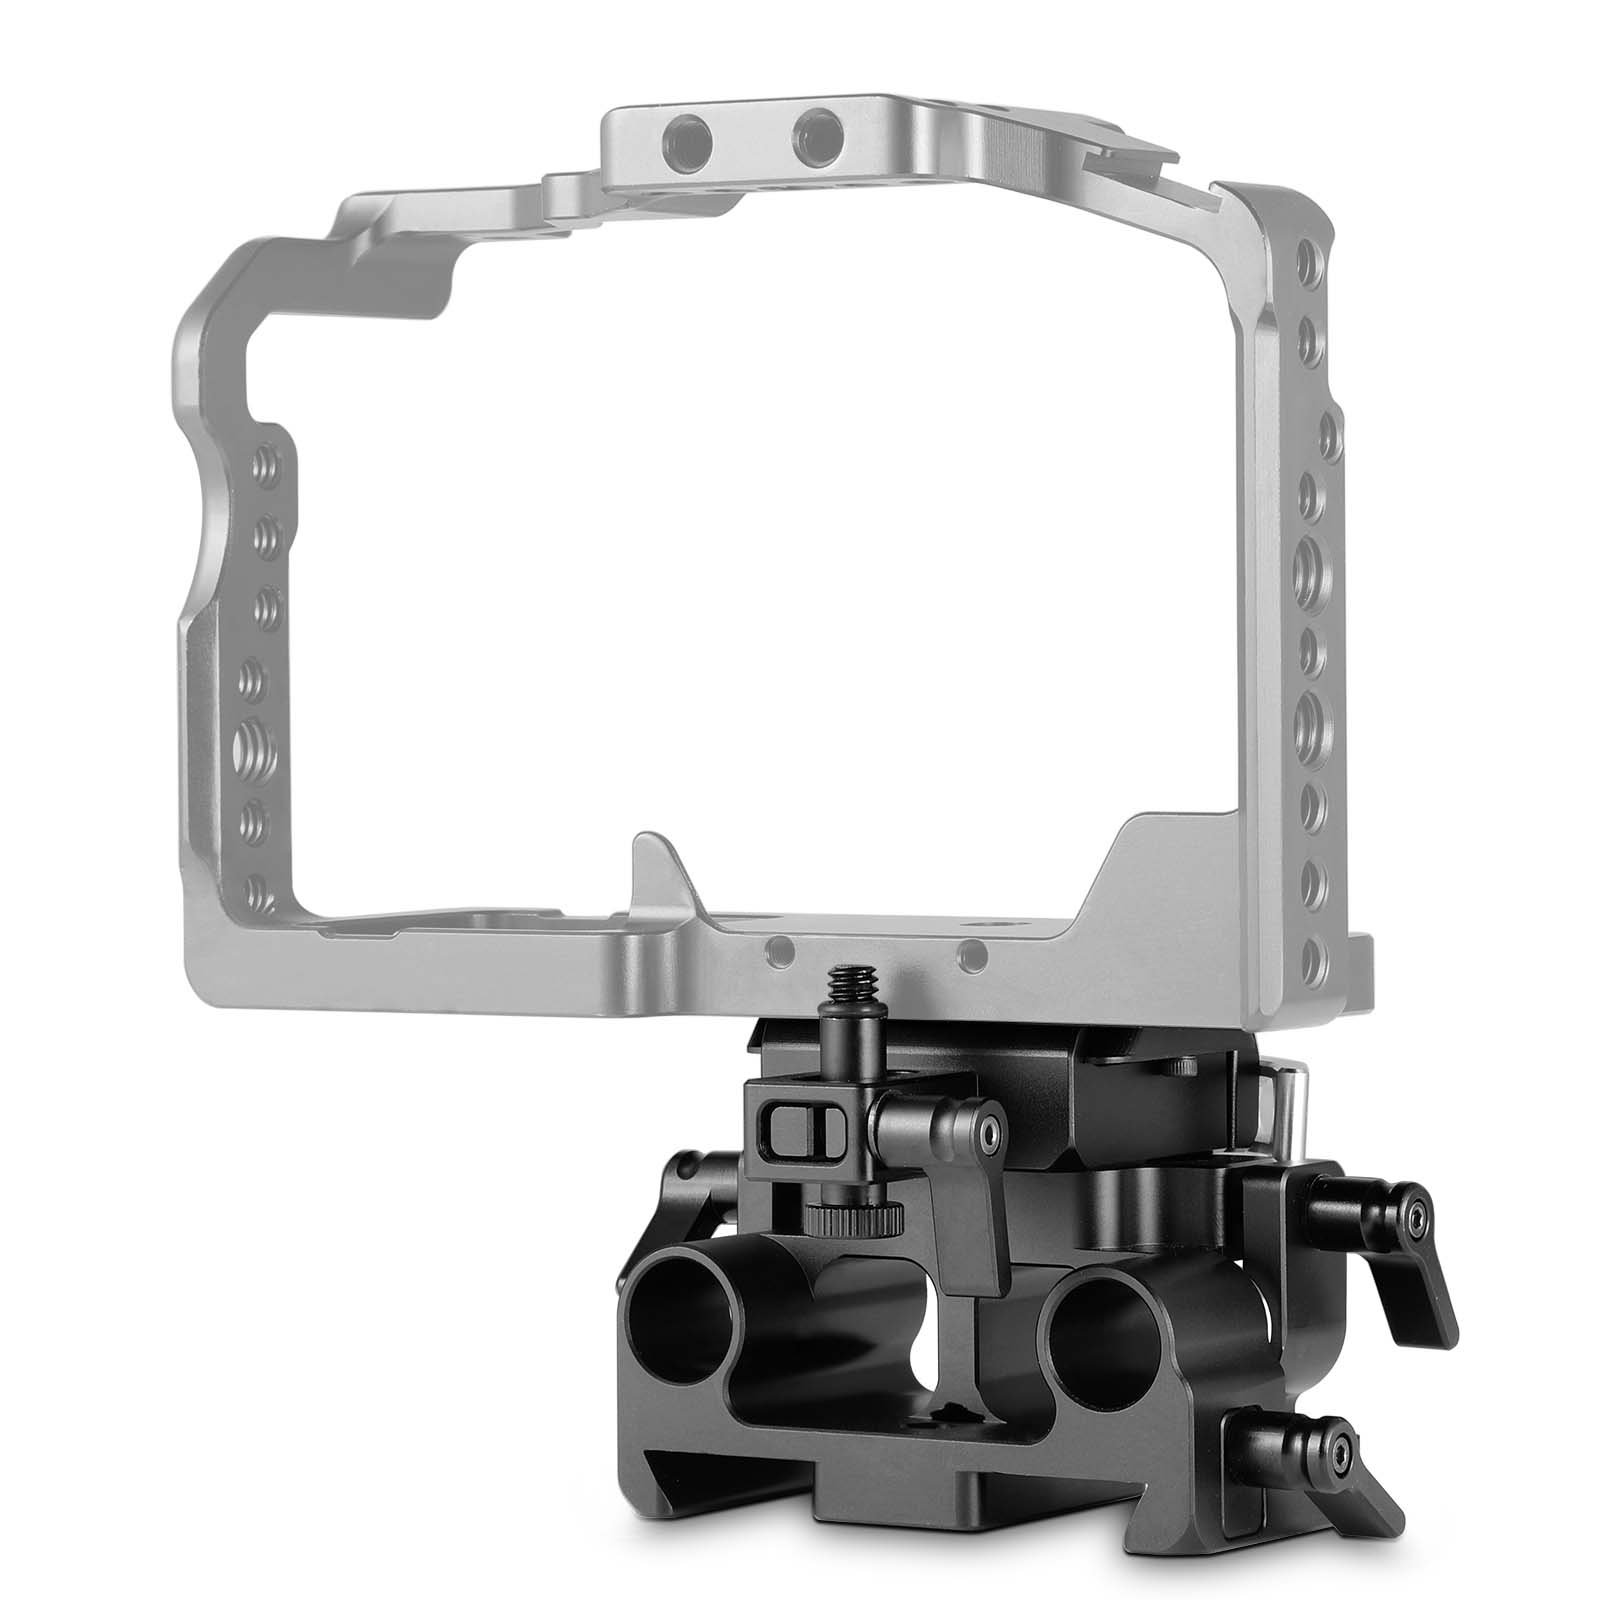 SmallRig GH5/GH5S Quick Release Baseplate Kit for Panasonic Lumix, 15mm Rod Rail System with Lens Adapter Support